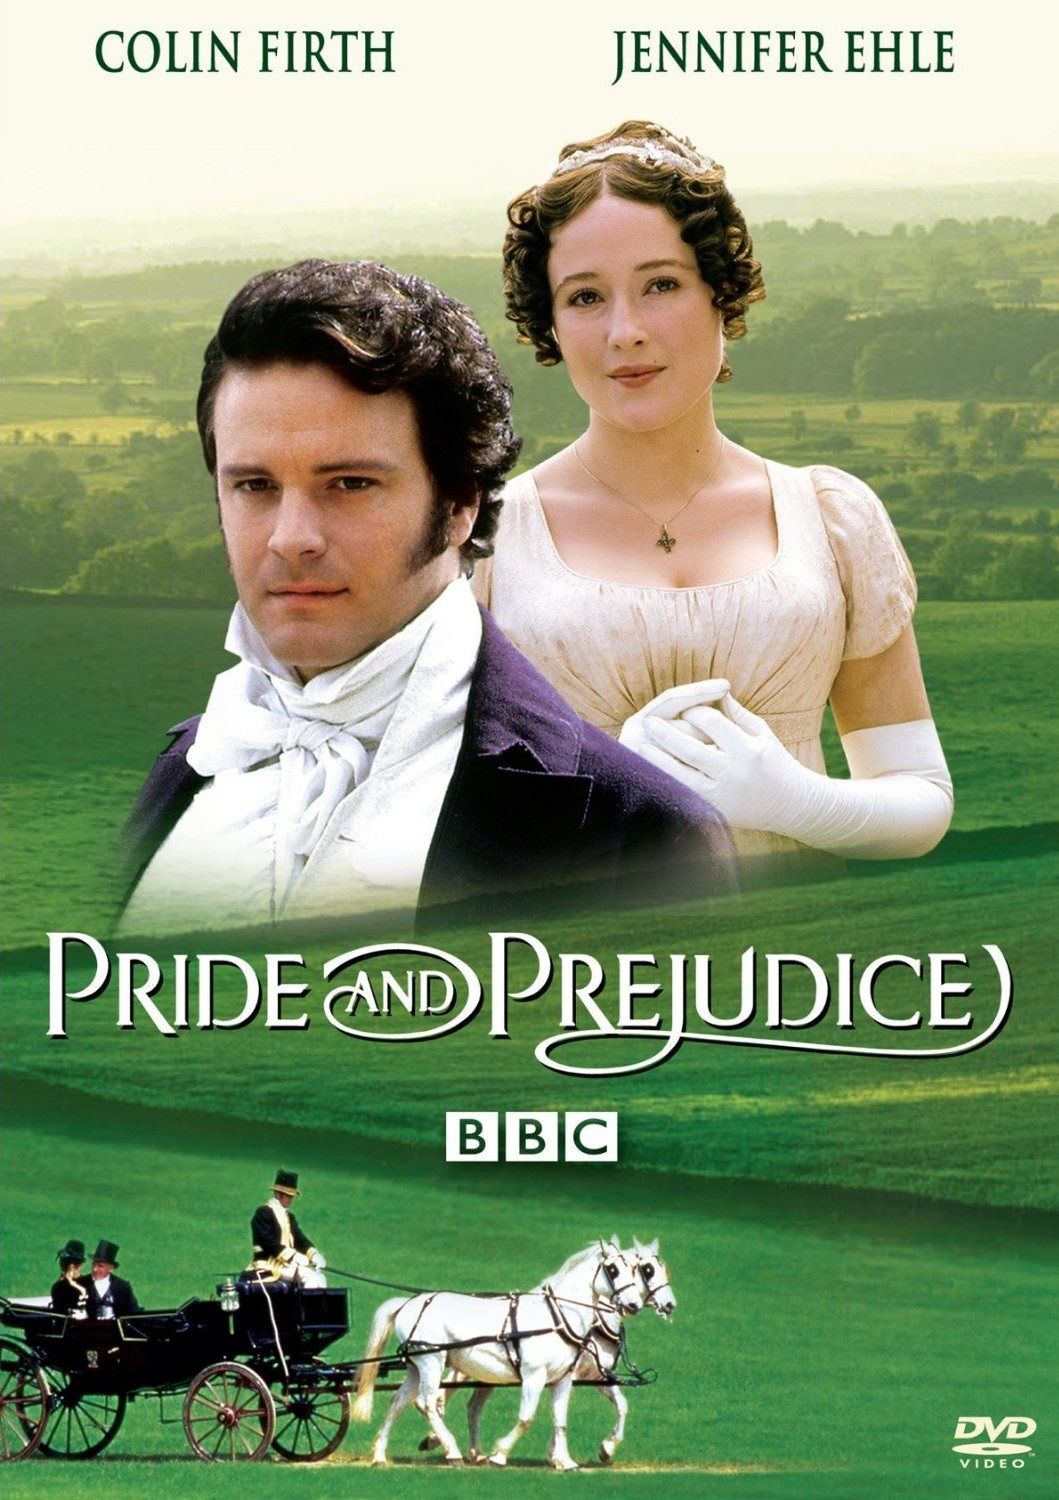 Pride and Prejudice (TV Mini-Series 1995) - IMDb